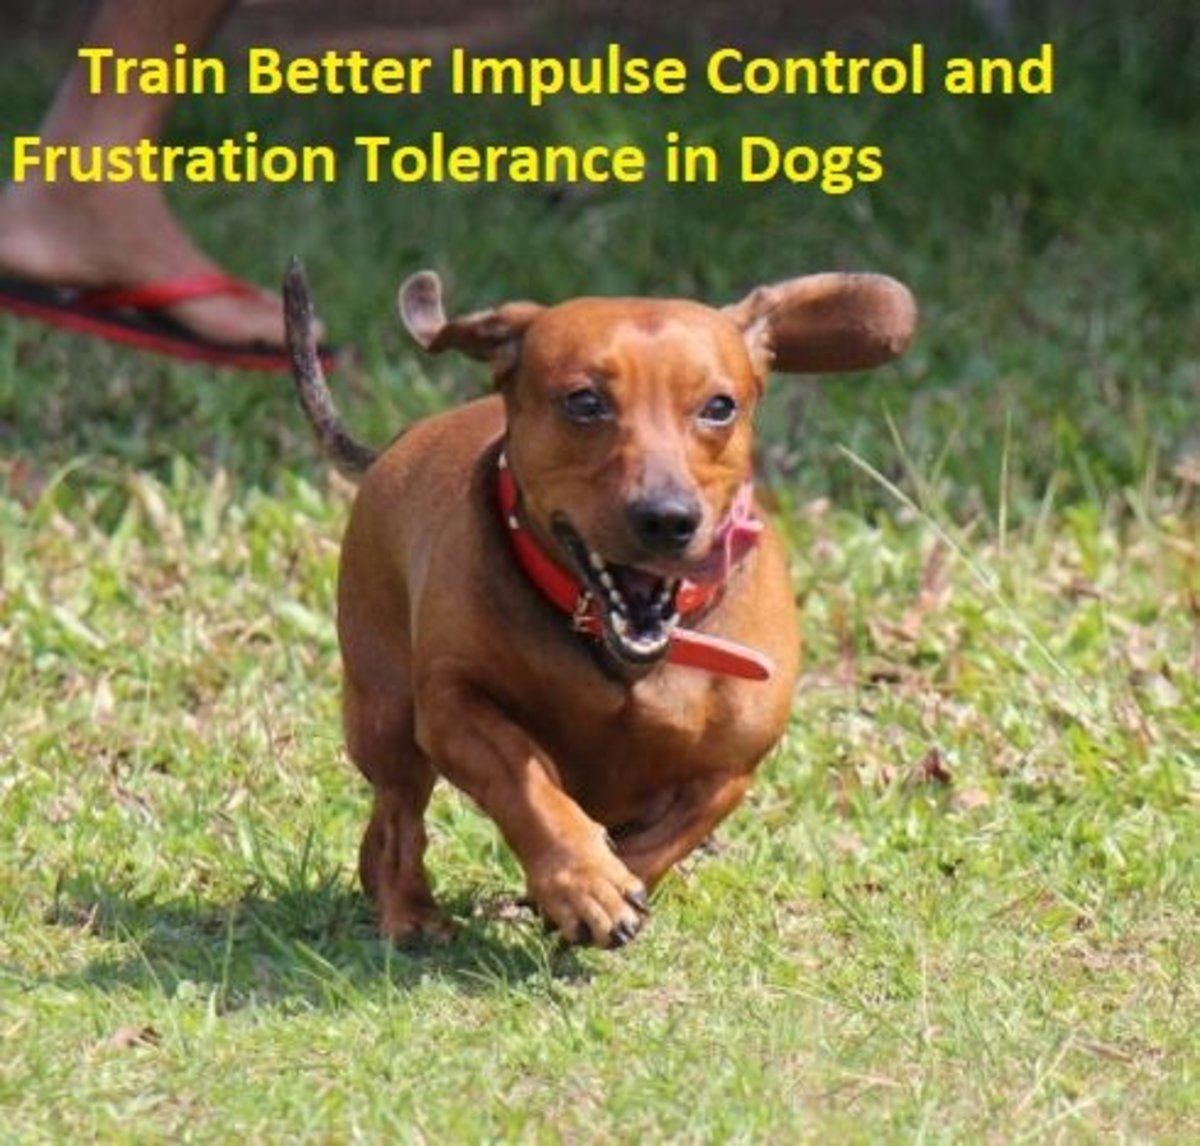 Training a Dog Impulse Control and Frustration Tolerance